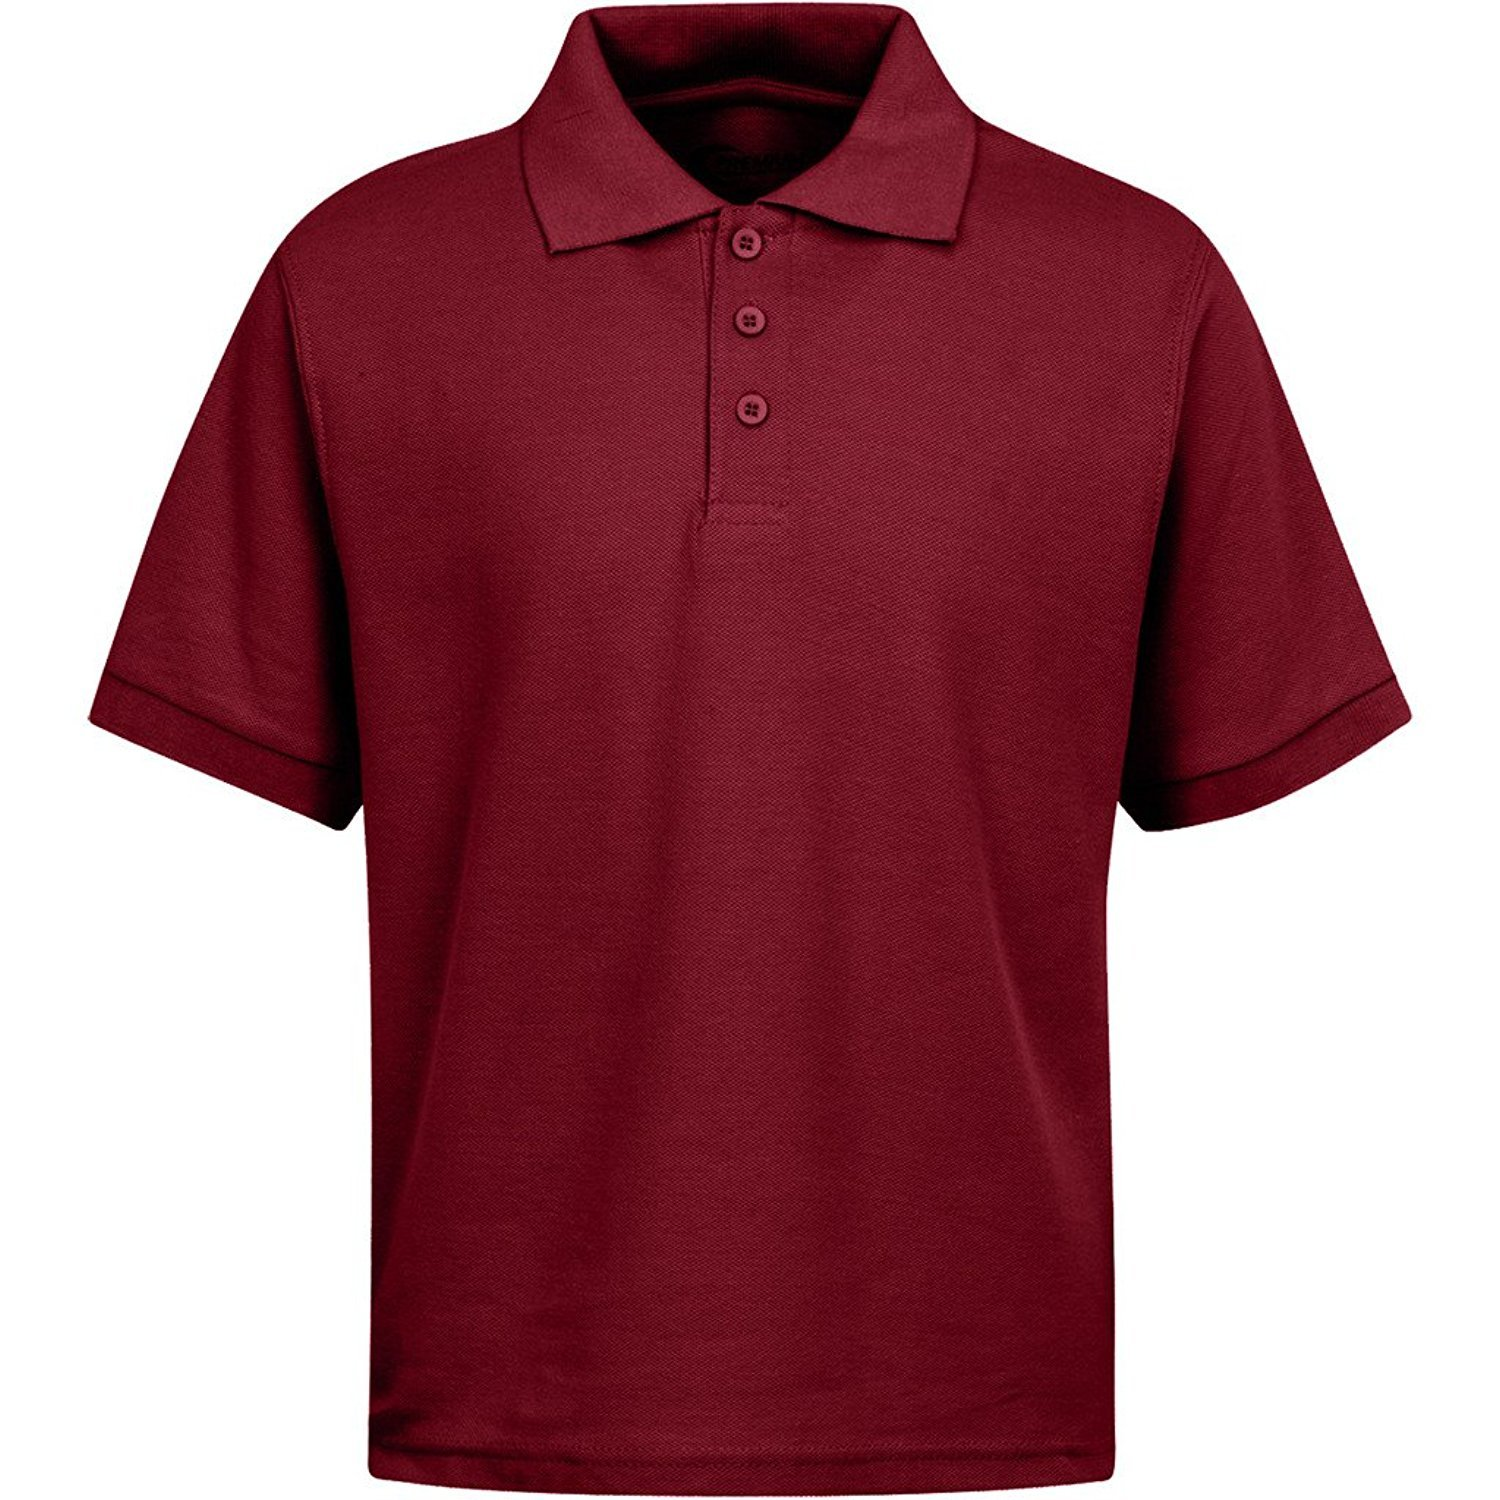 Amazon Premium Mens Polo Shirts Short Sleeves Stain Guard